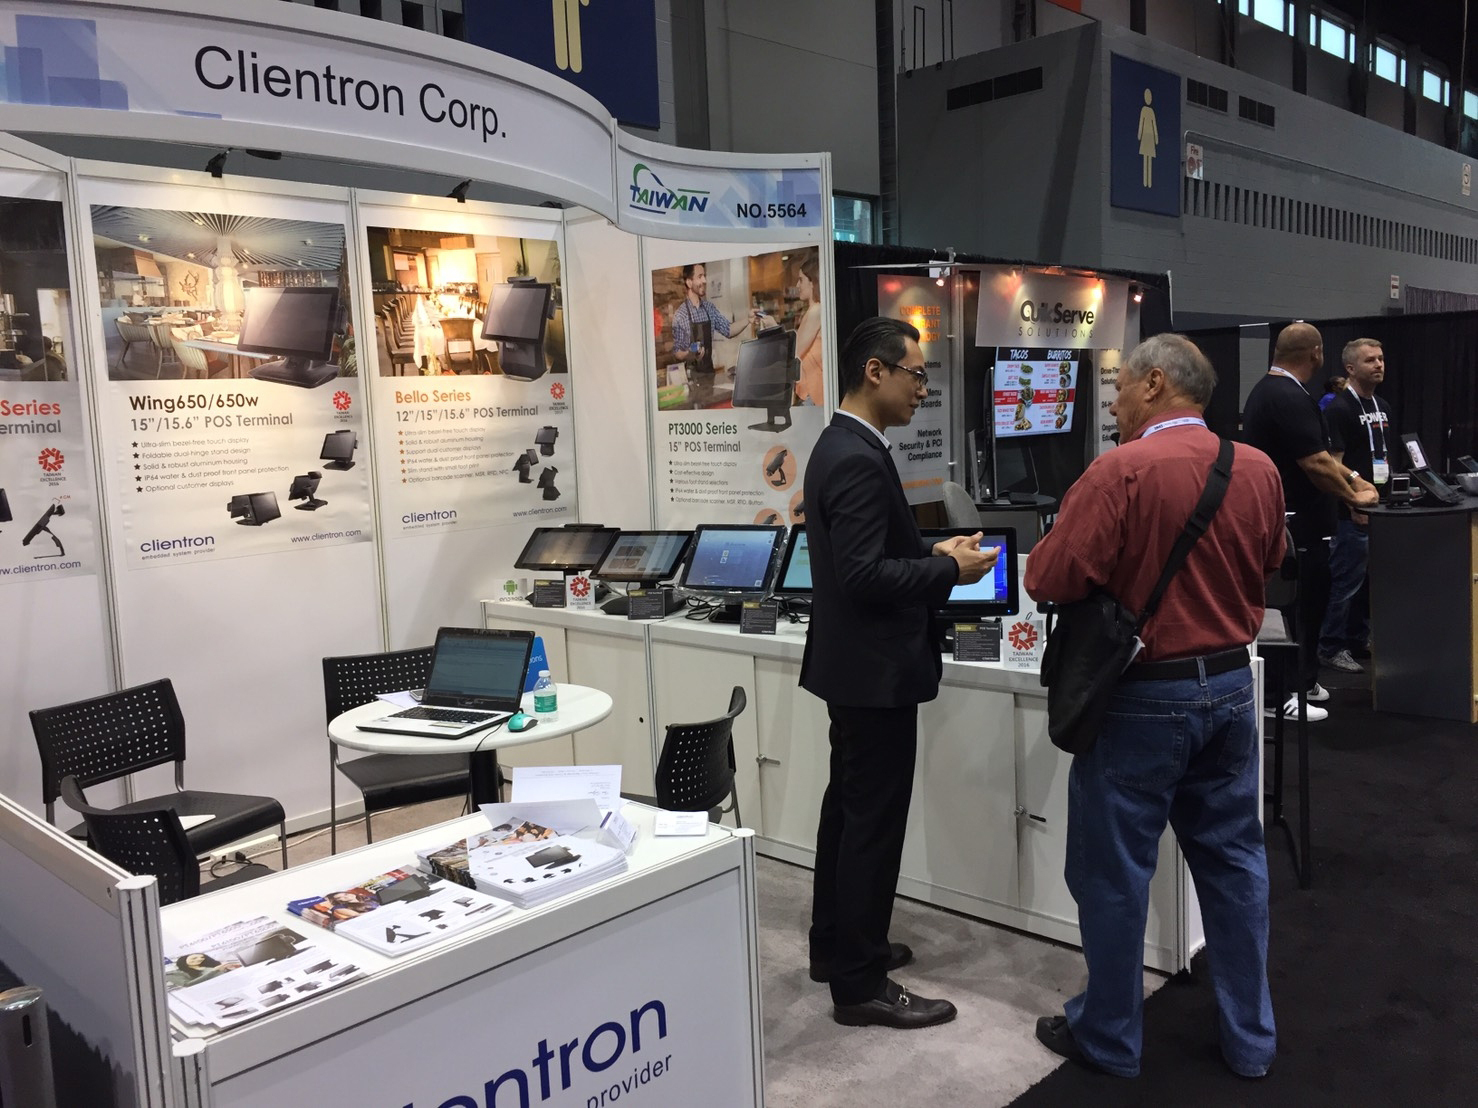 intellasia east asia news - clientron displays pos terminals with